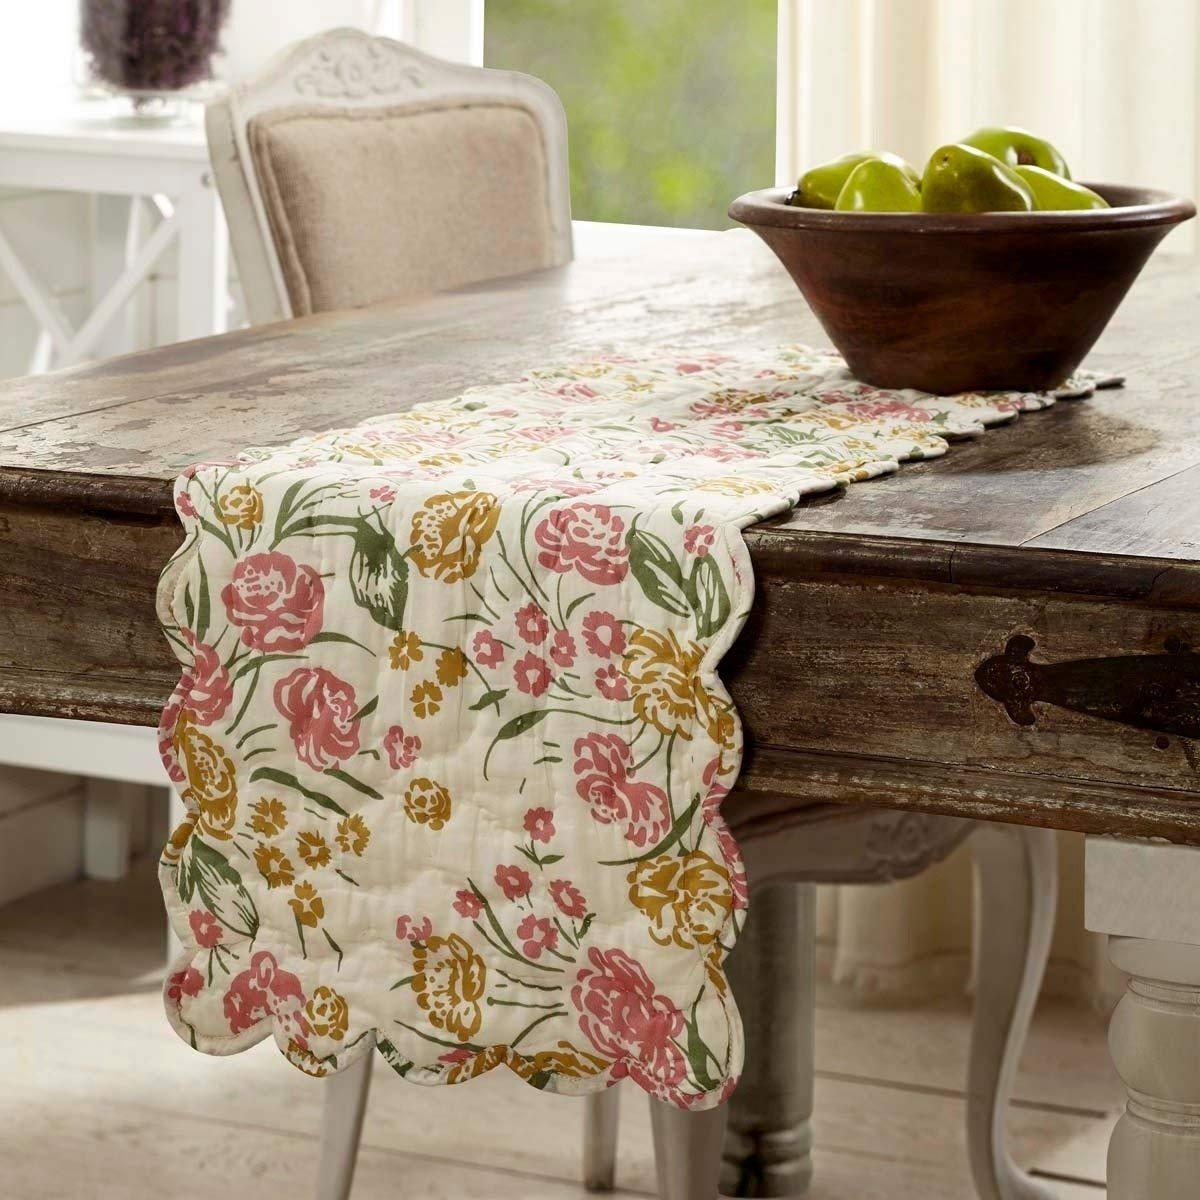 """13"""" X 48""""inch Green Pink White Burnt Gold Sage Creme Multi Colored Floral Patterned Table Runner, 1 Piece Flower Leaf Quilted Design Dining Table Linen Scalloped Edge Reversible Country Style, Cotton"""